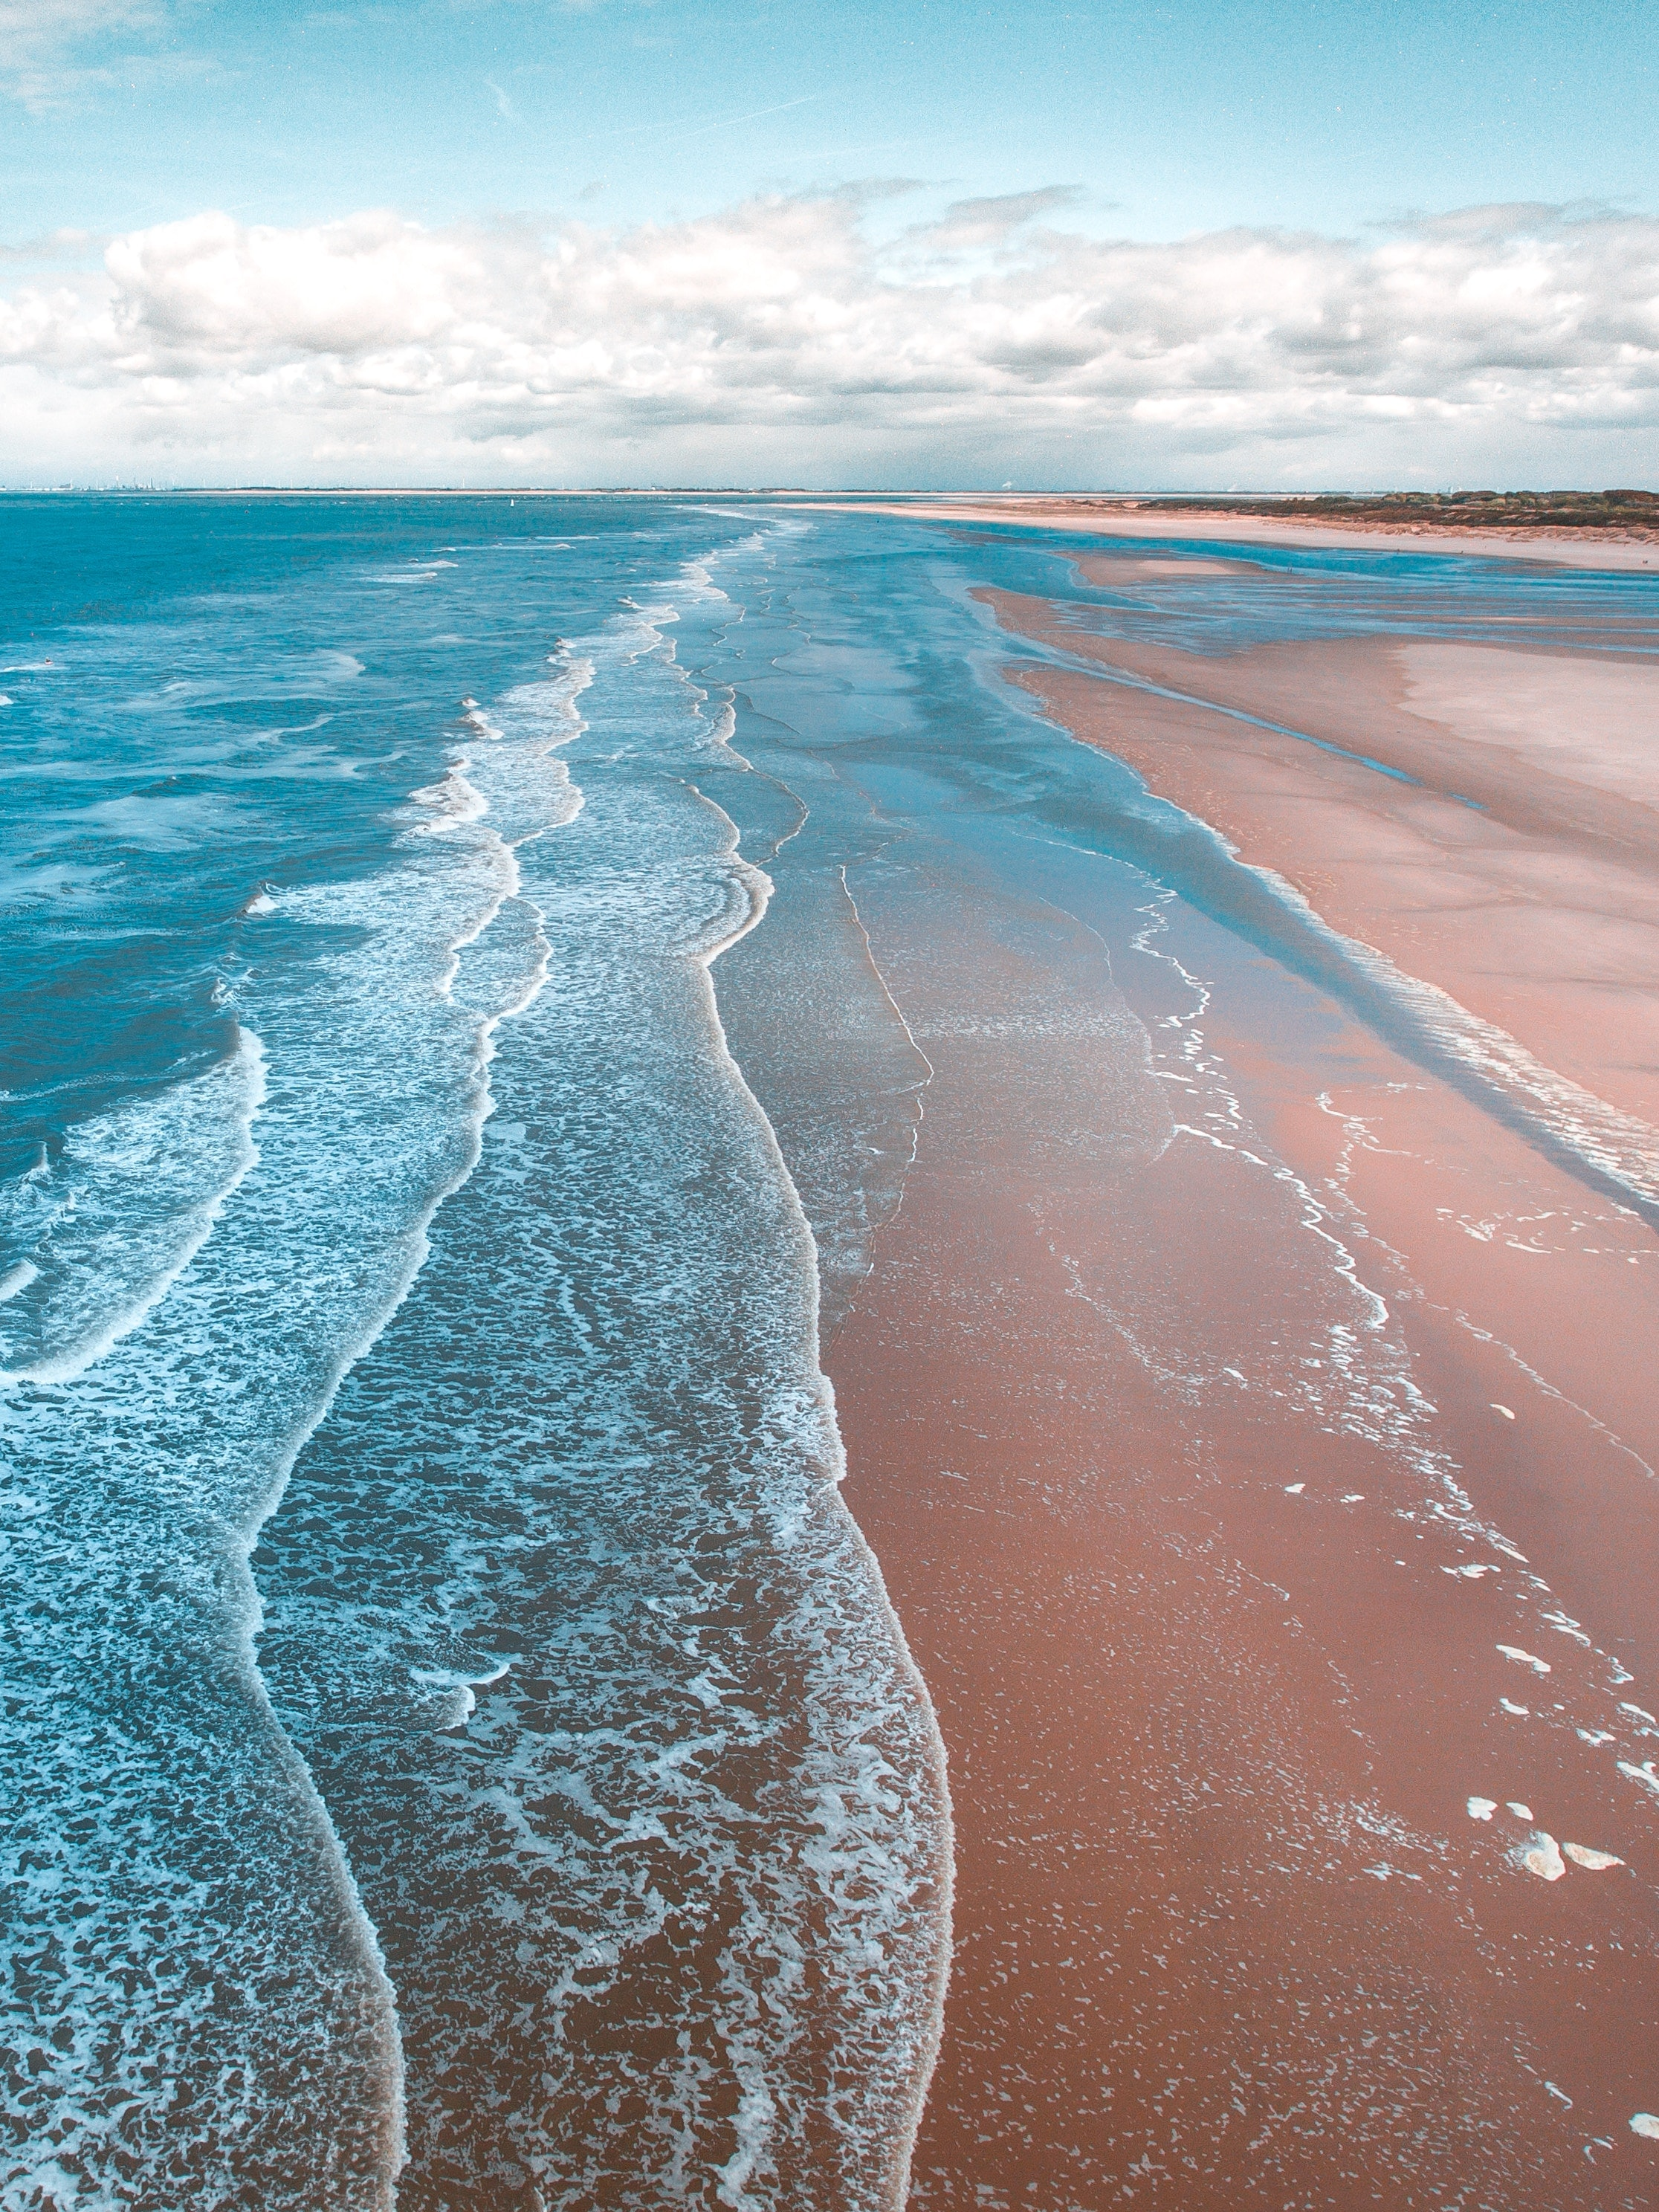 landscape photo of seashore under cloudy sky during daytime